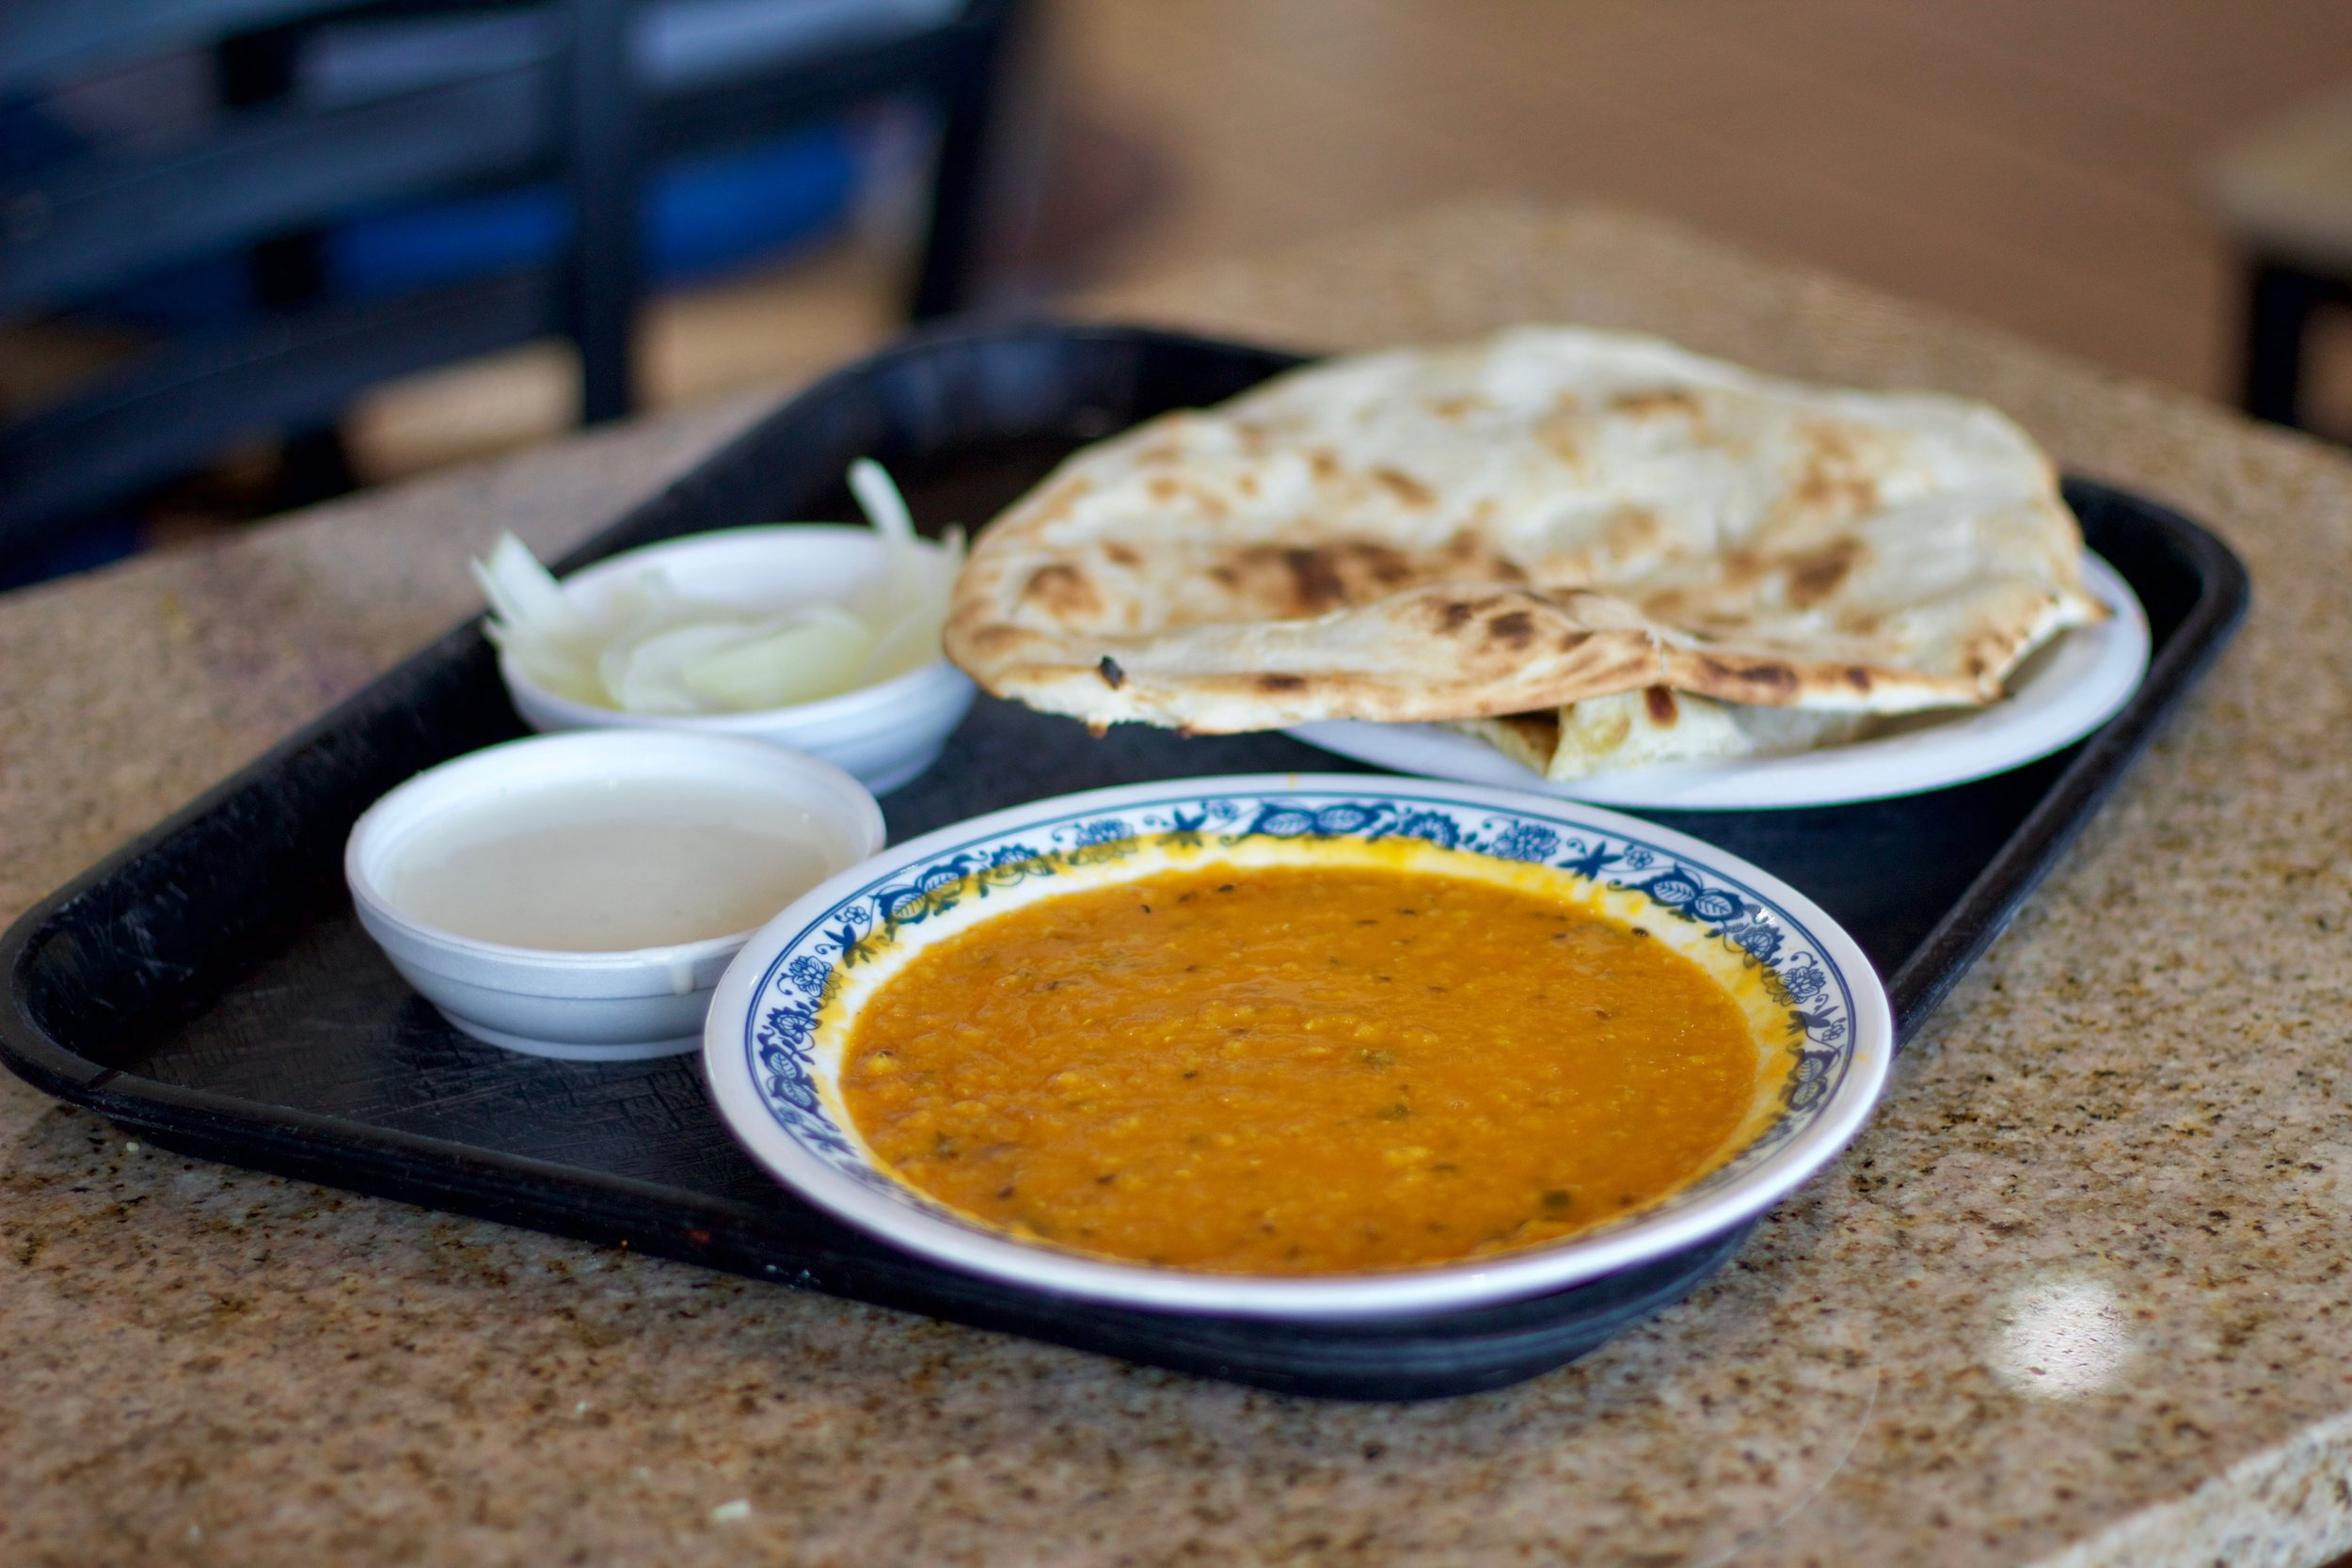 A meal for under $4 at Ghareeb Nawaz. Photo by Dawson Vosburg.